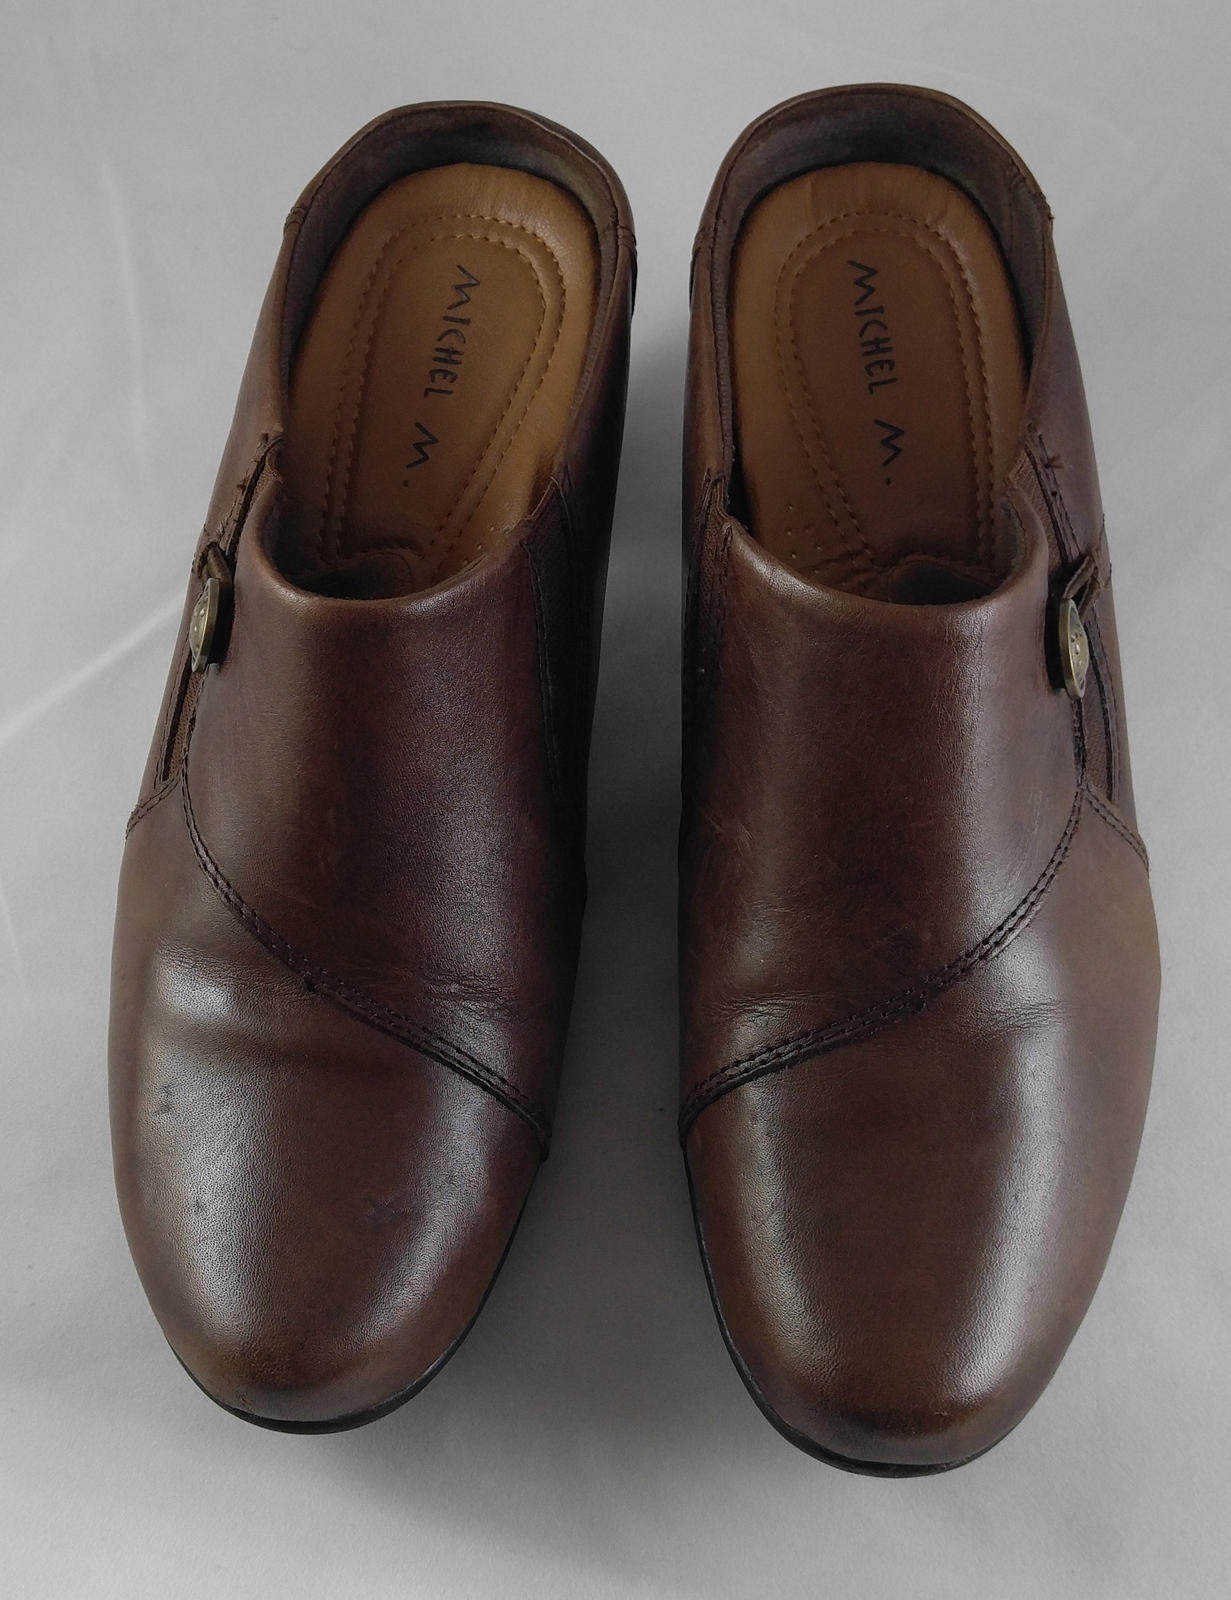 Michel M. Women's Brown Leather Mules Comfort Slip-On Heels Maryport Size 8.5